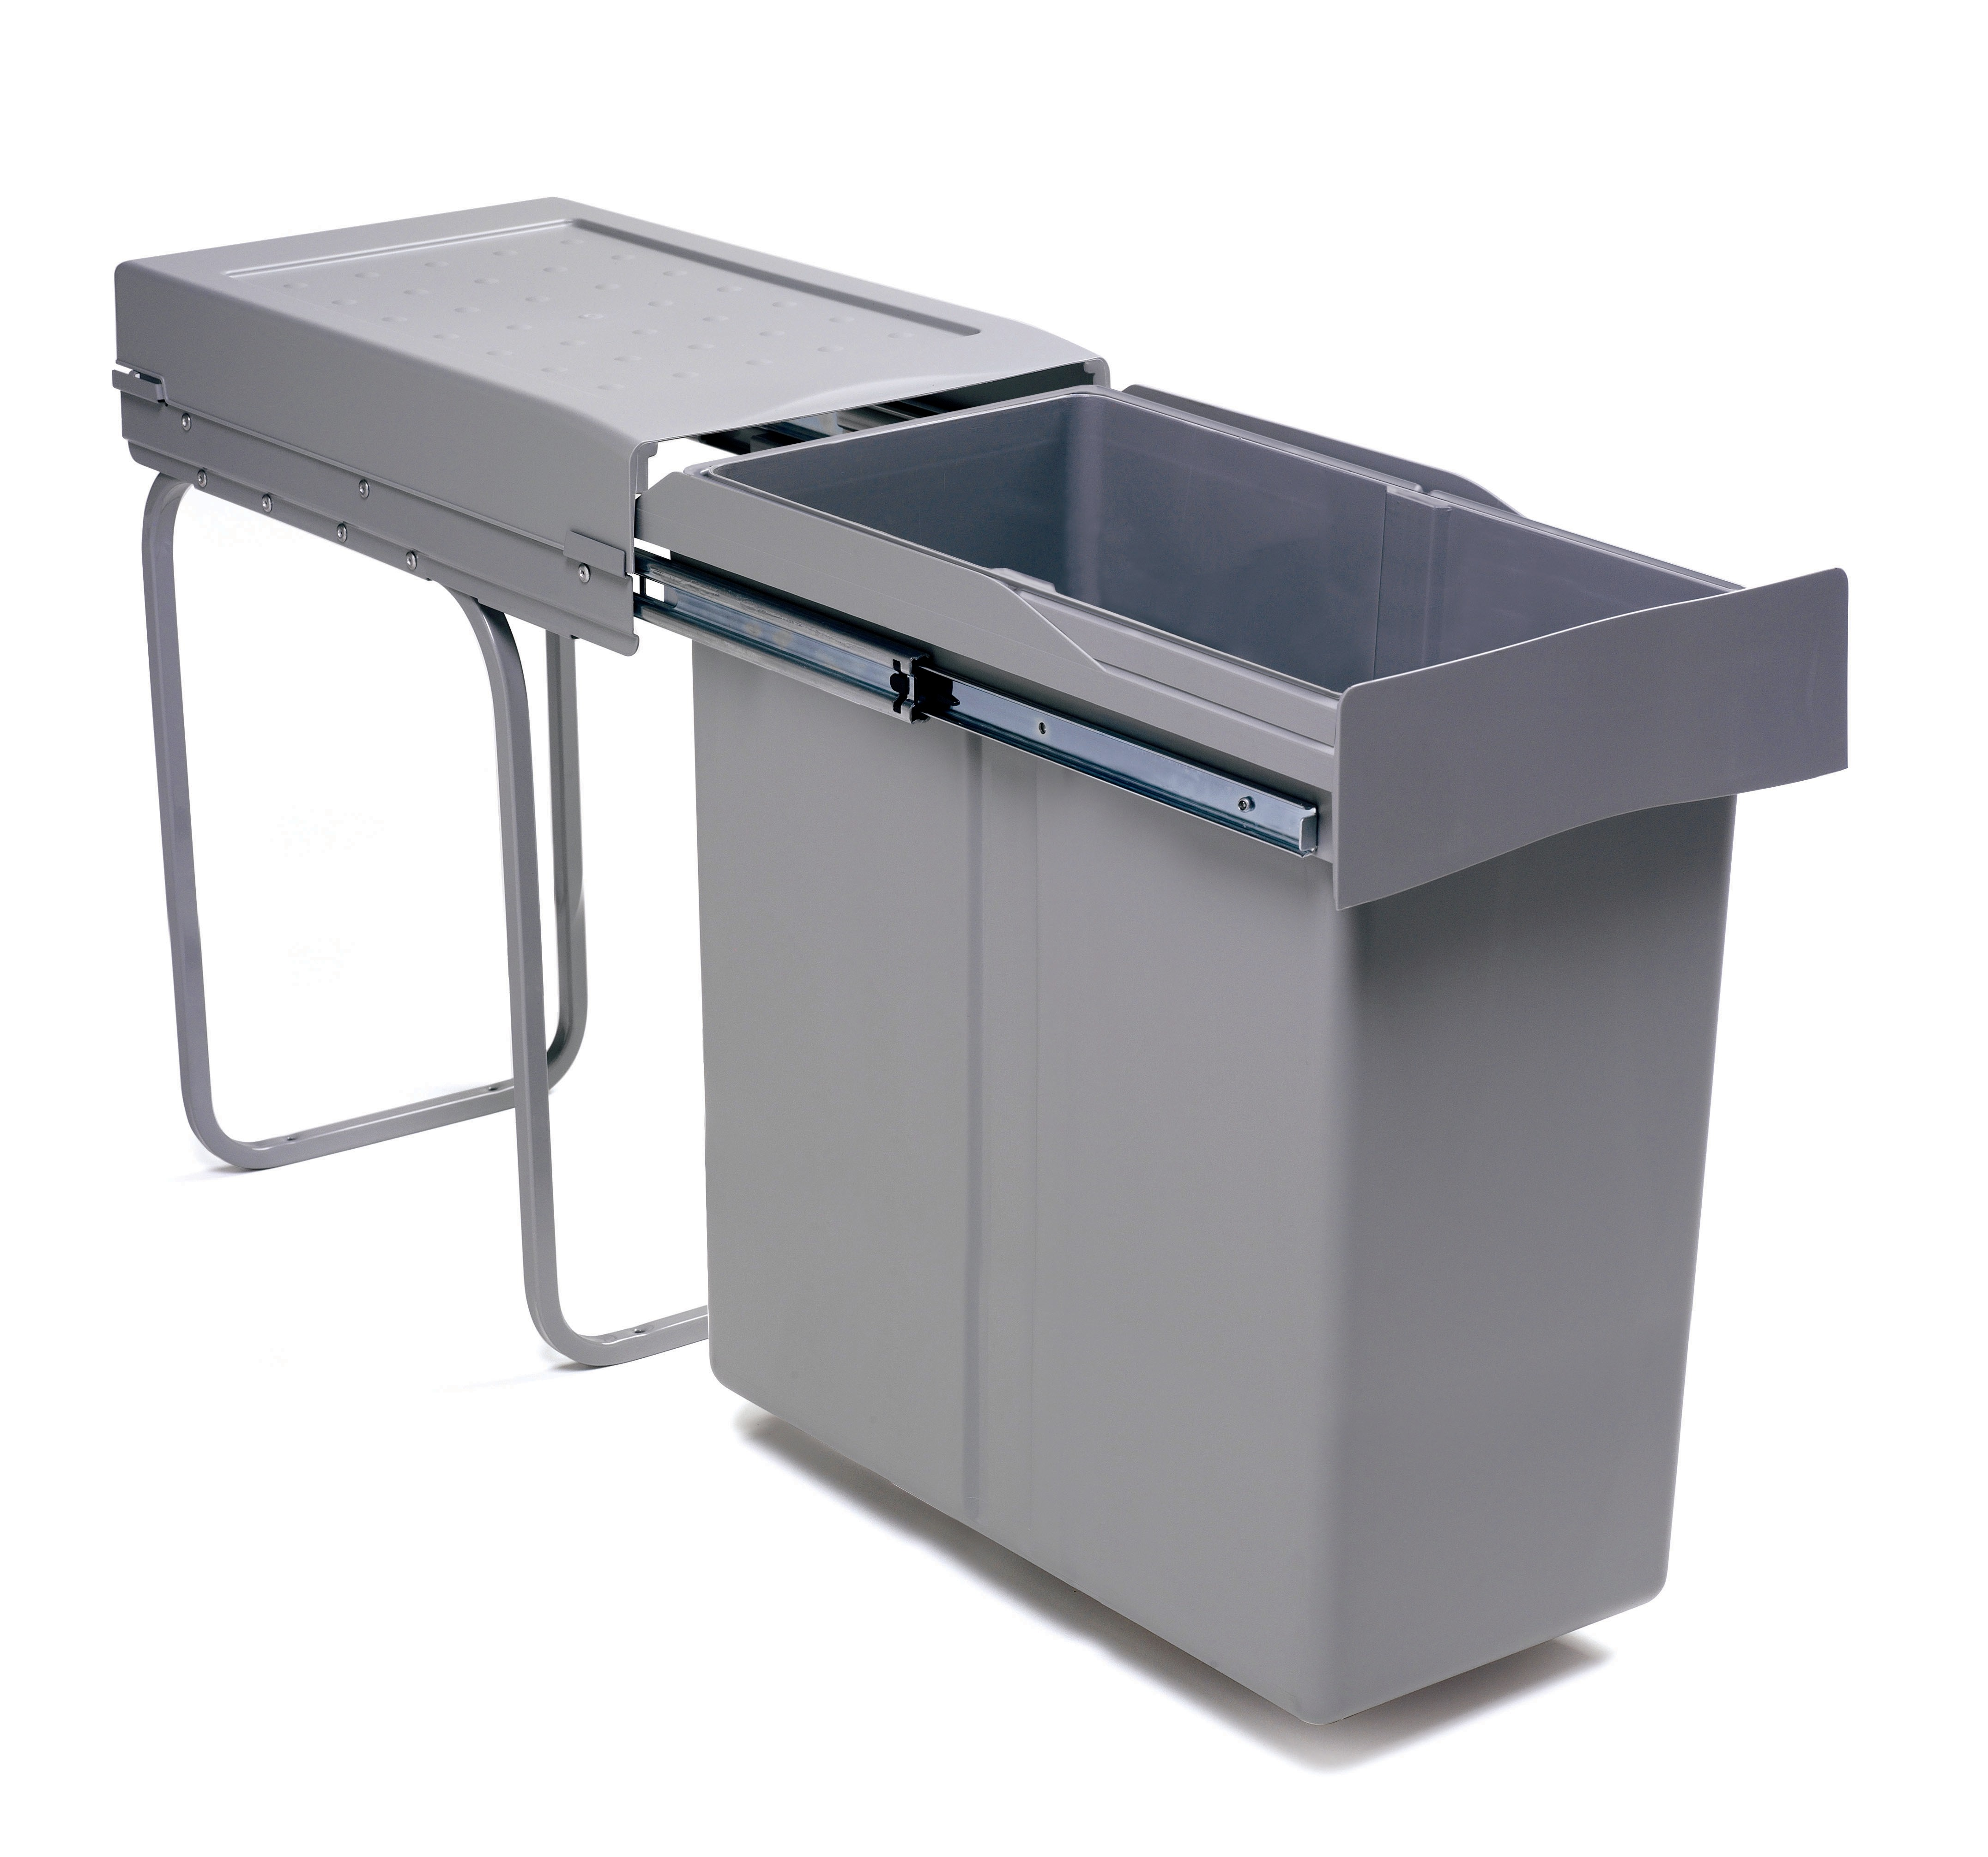 Waste bin waste bin 40 l grey 537mm h 255mm w 450mm d for Bins for kitchen cabinets